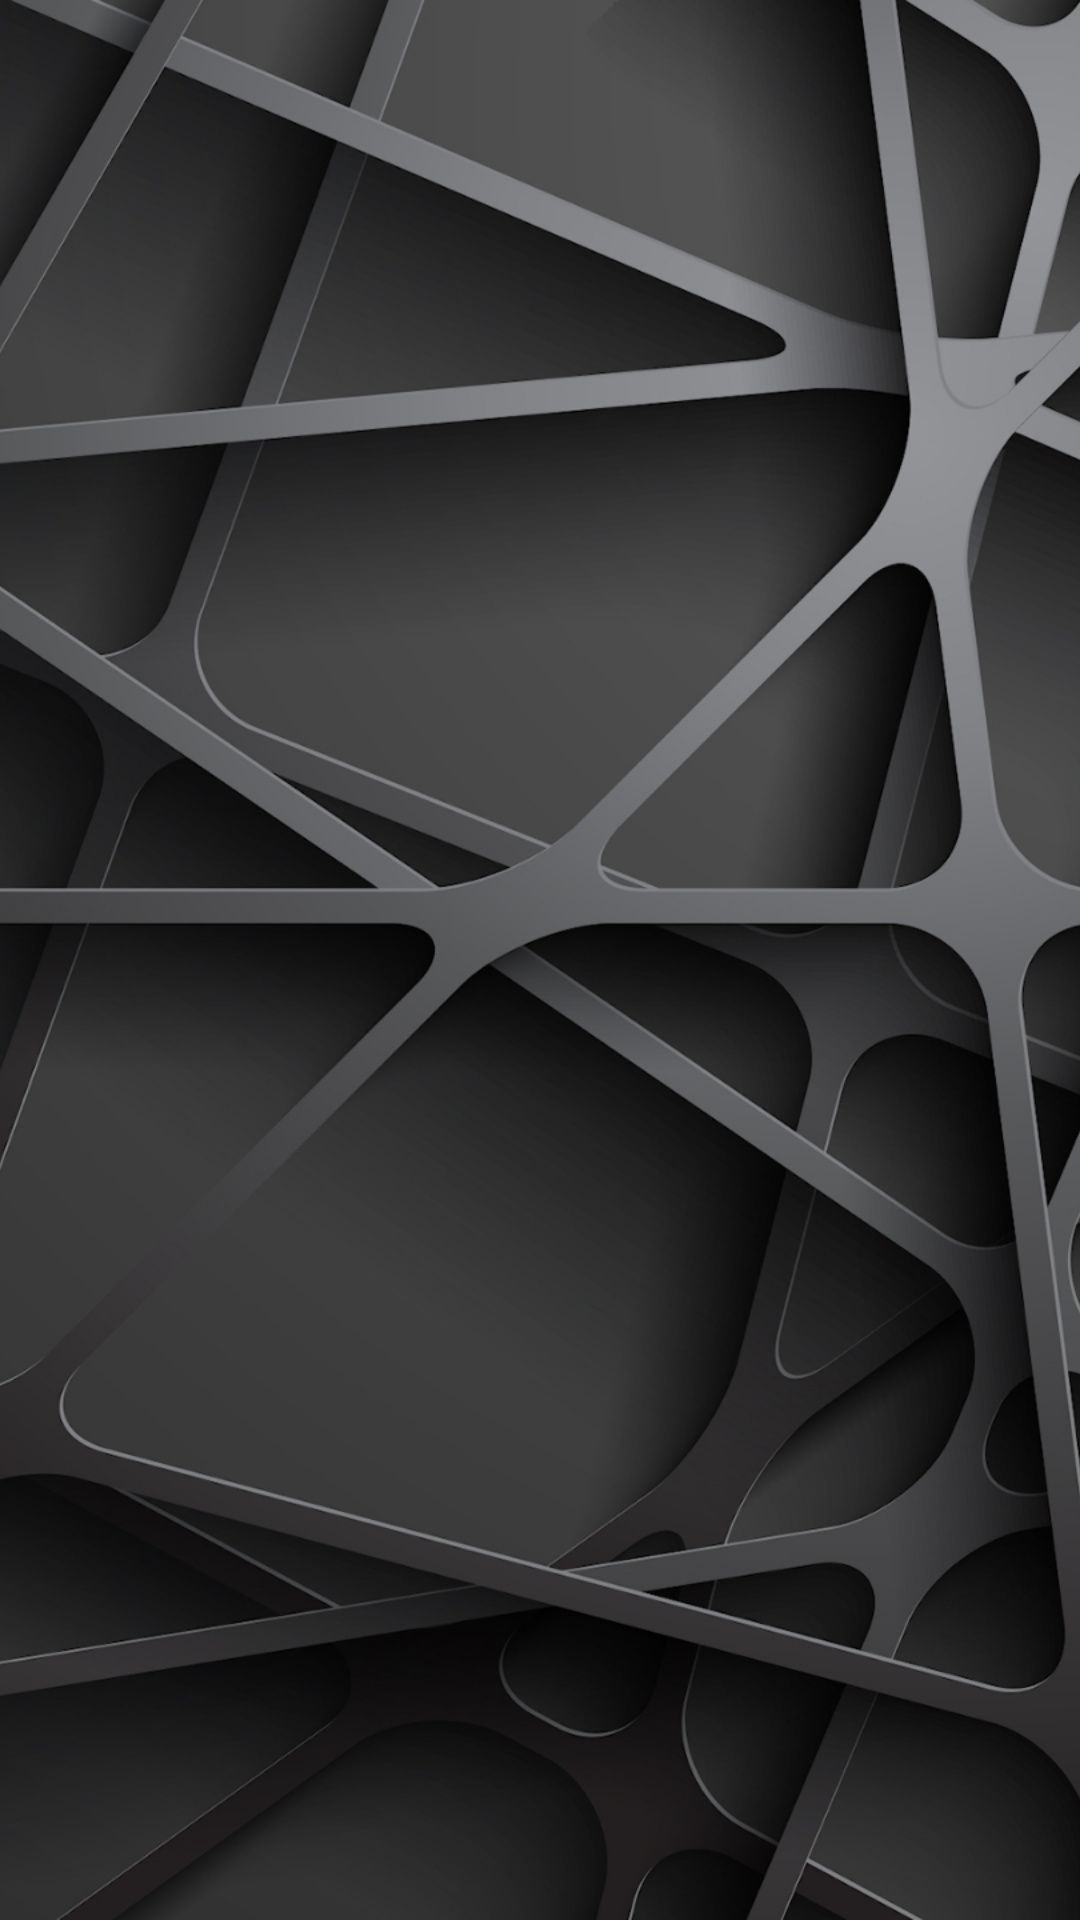 Imgur The Magic Of The Internet Abstract Iphone Wallpaper Cool Wallpapers Abstract Geometric Wallpaper